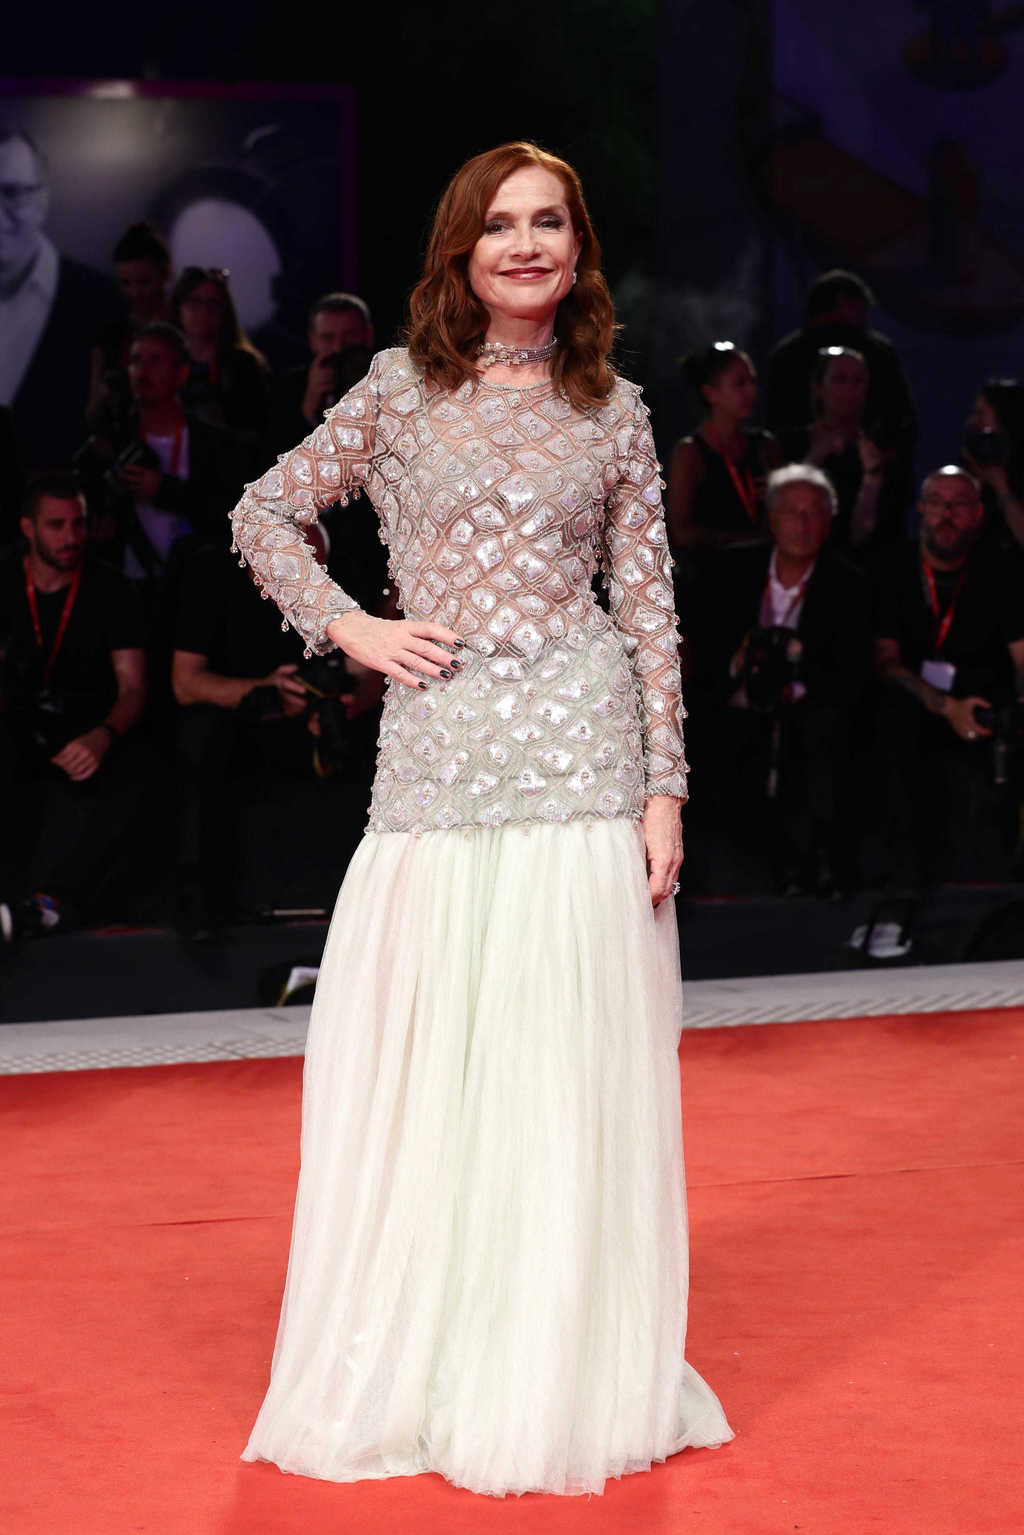 Venezia 2019 -  Isabelle Huppert - Hair by Massimo Serini